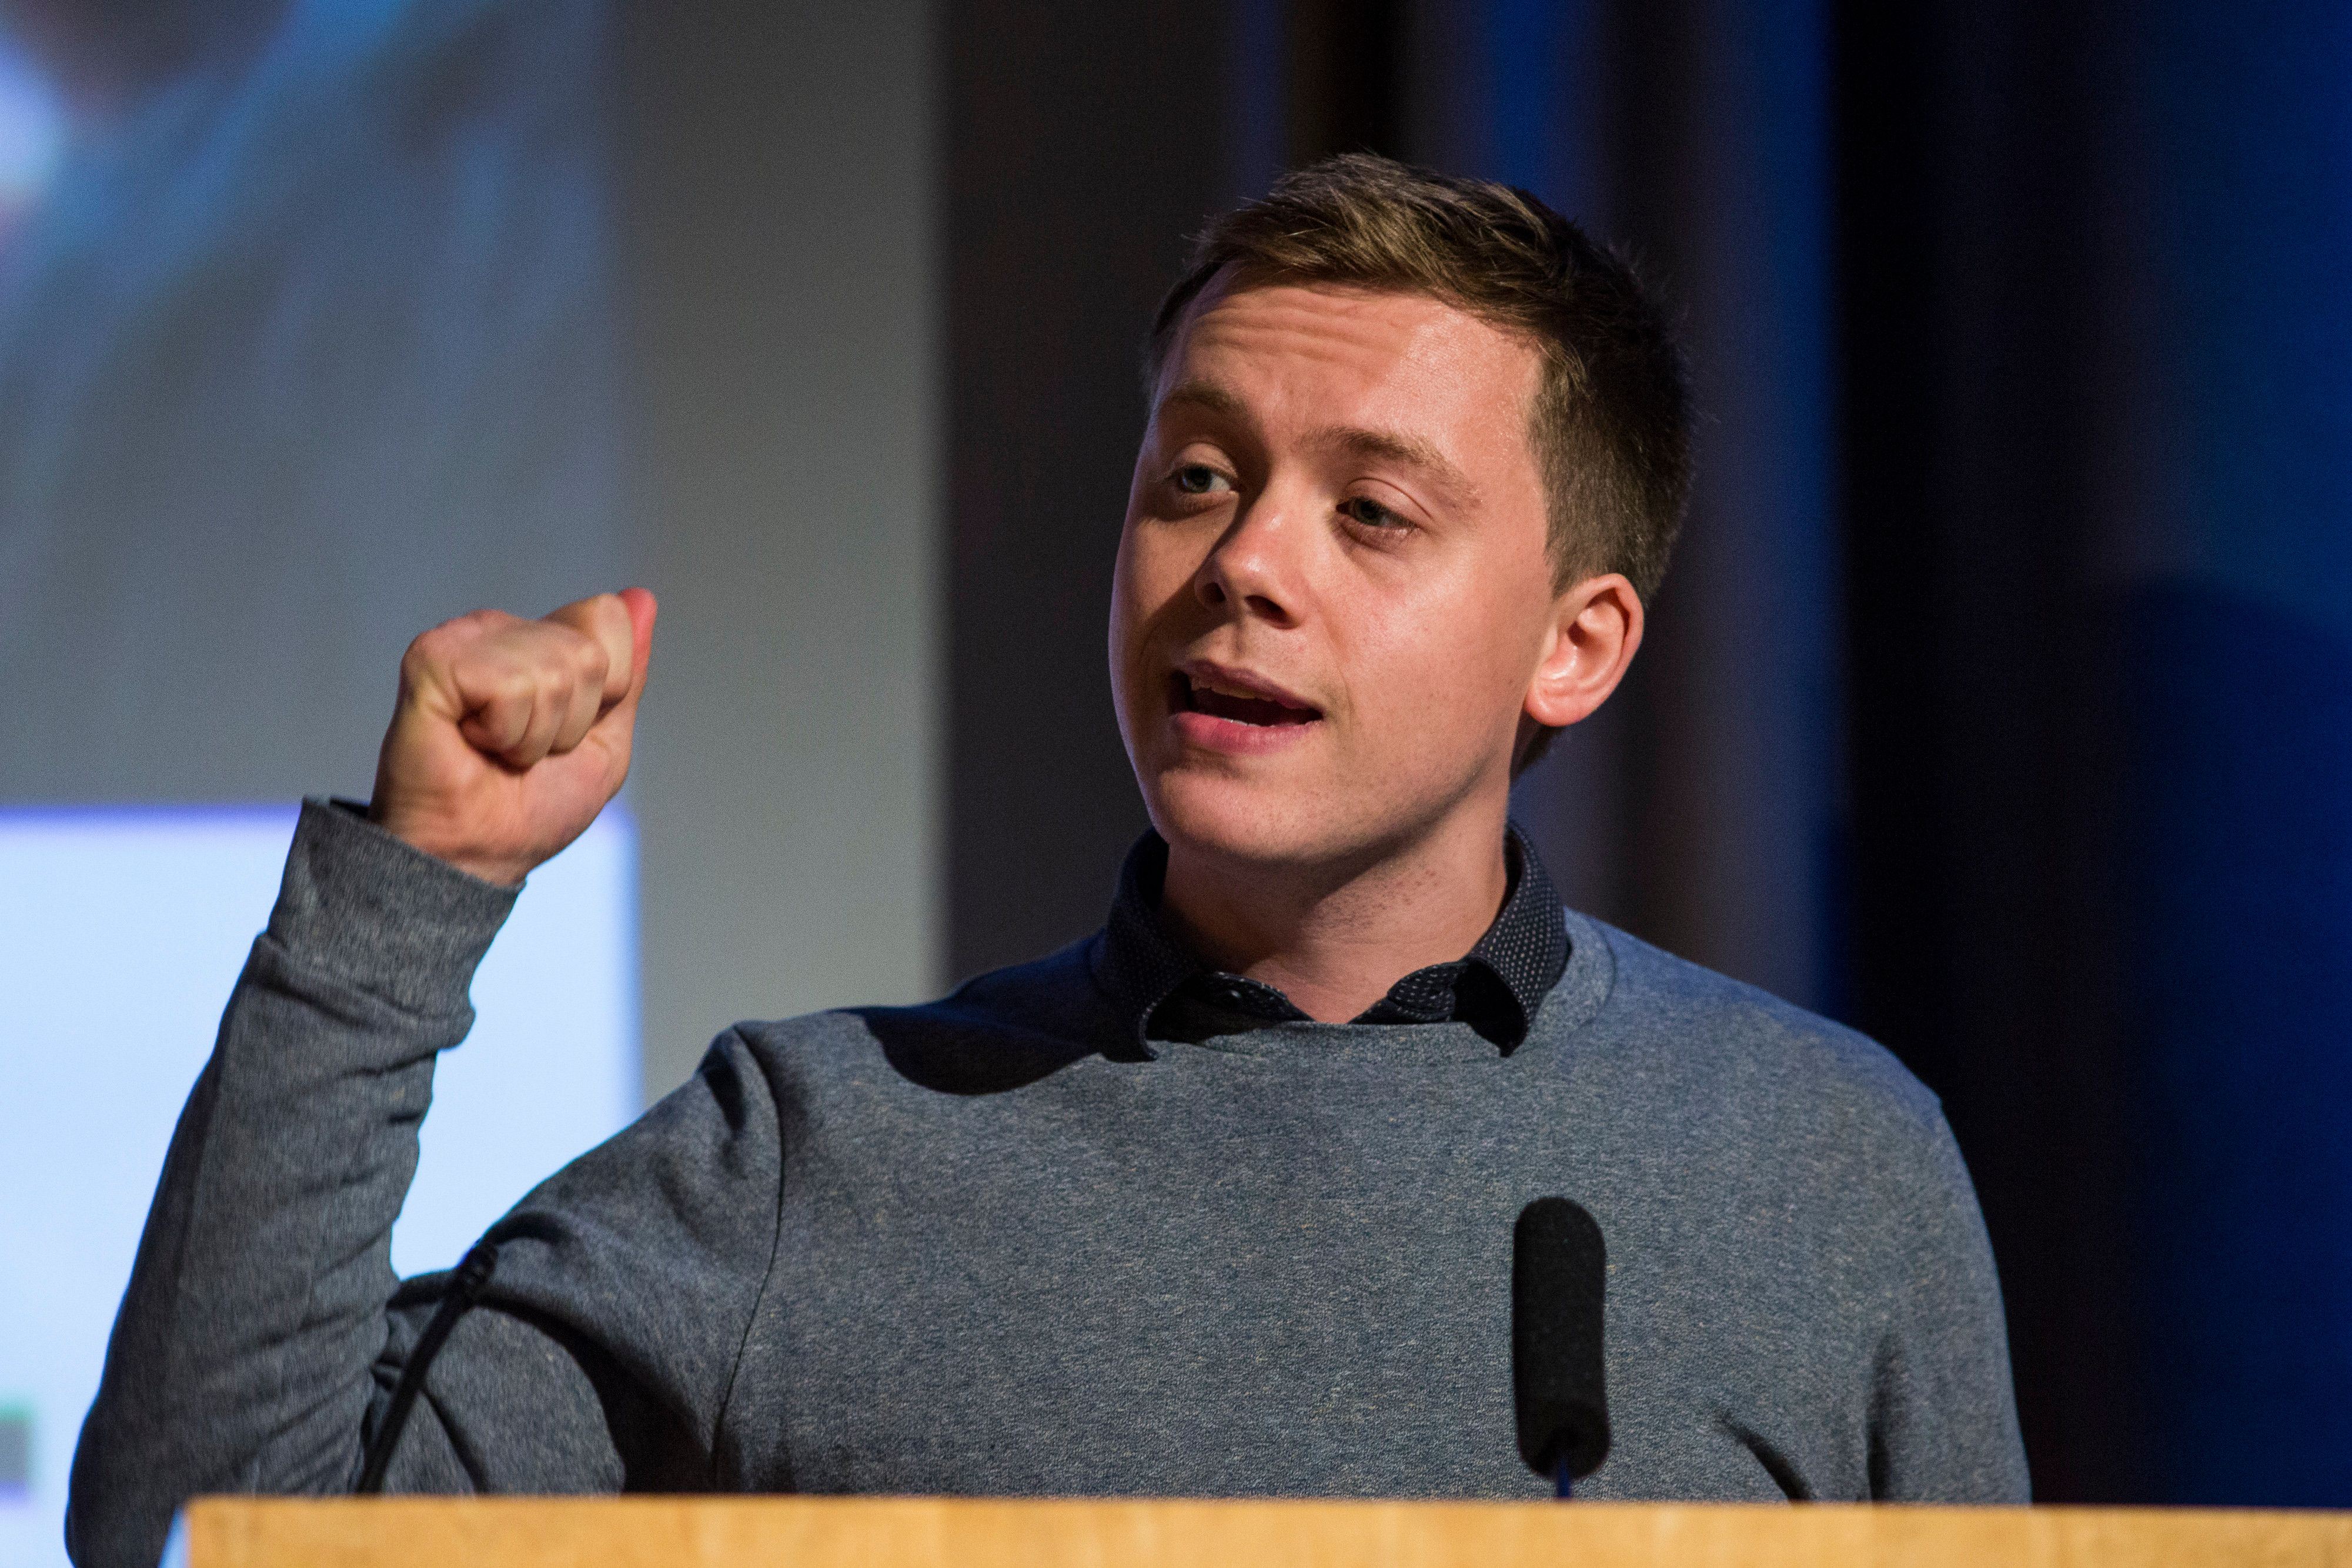 Owen Jones Has Become The Latest To Quit 'Completely And Utterly Depressing' Social